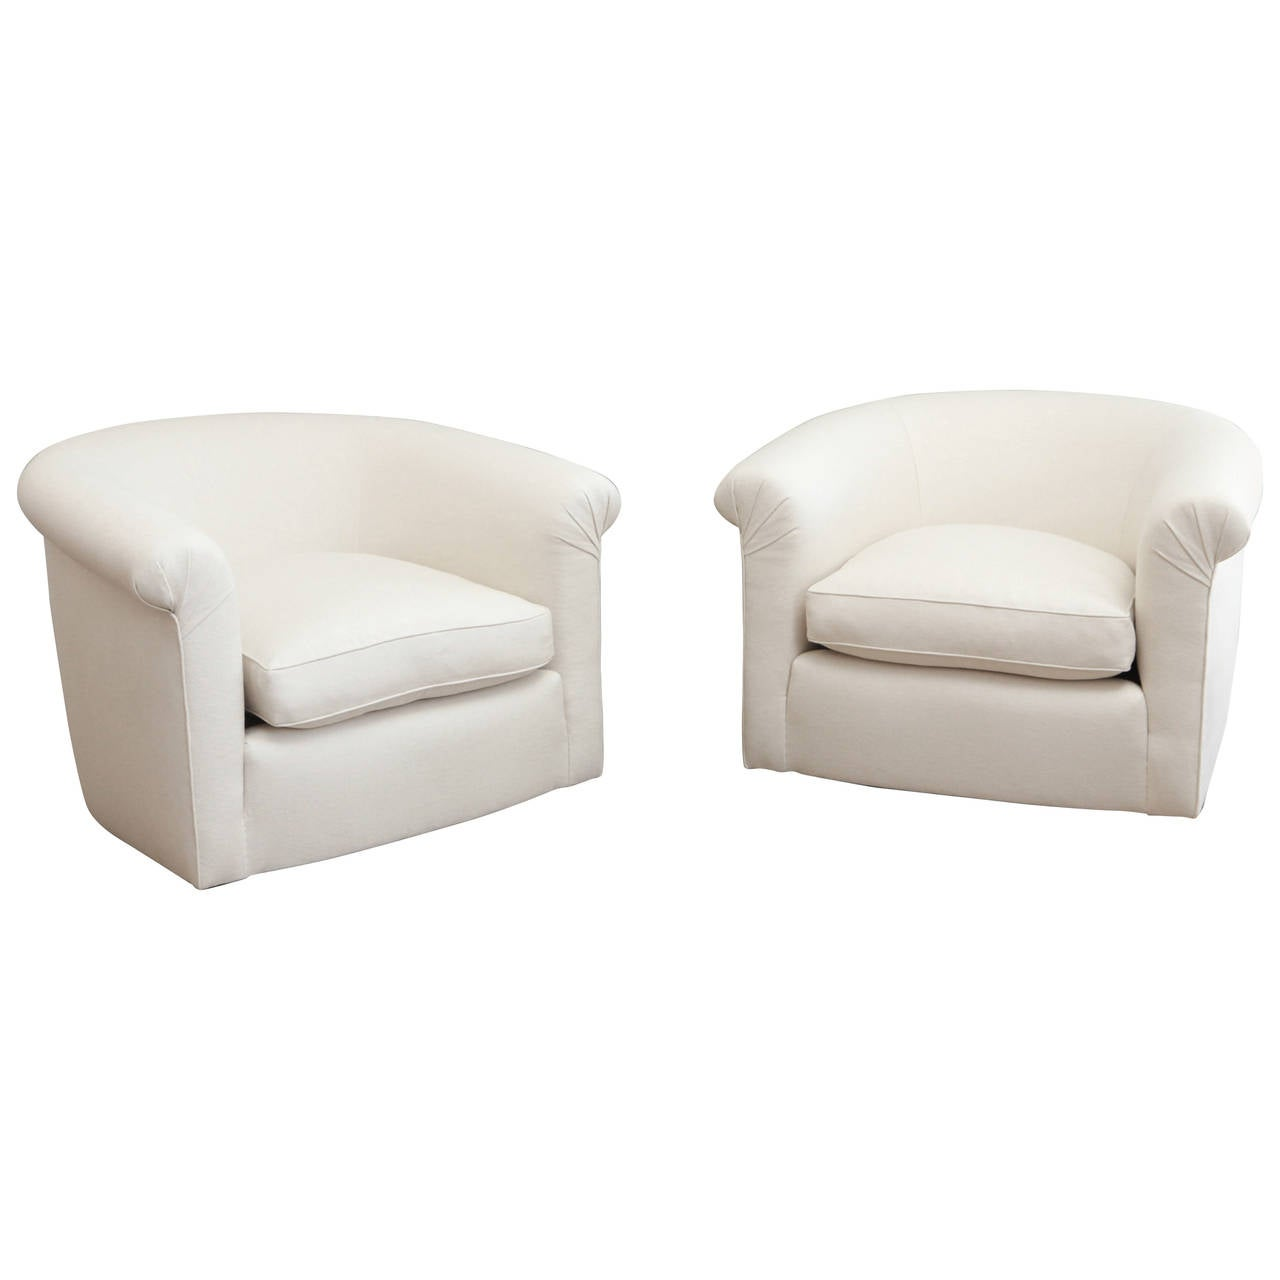 white linen chair tommy bahama beach bjs vintage swivel chairs at 1stdibs